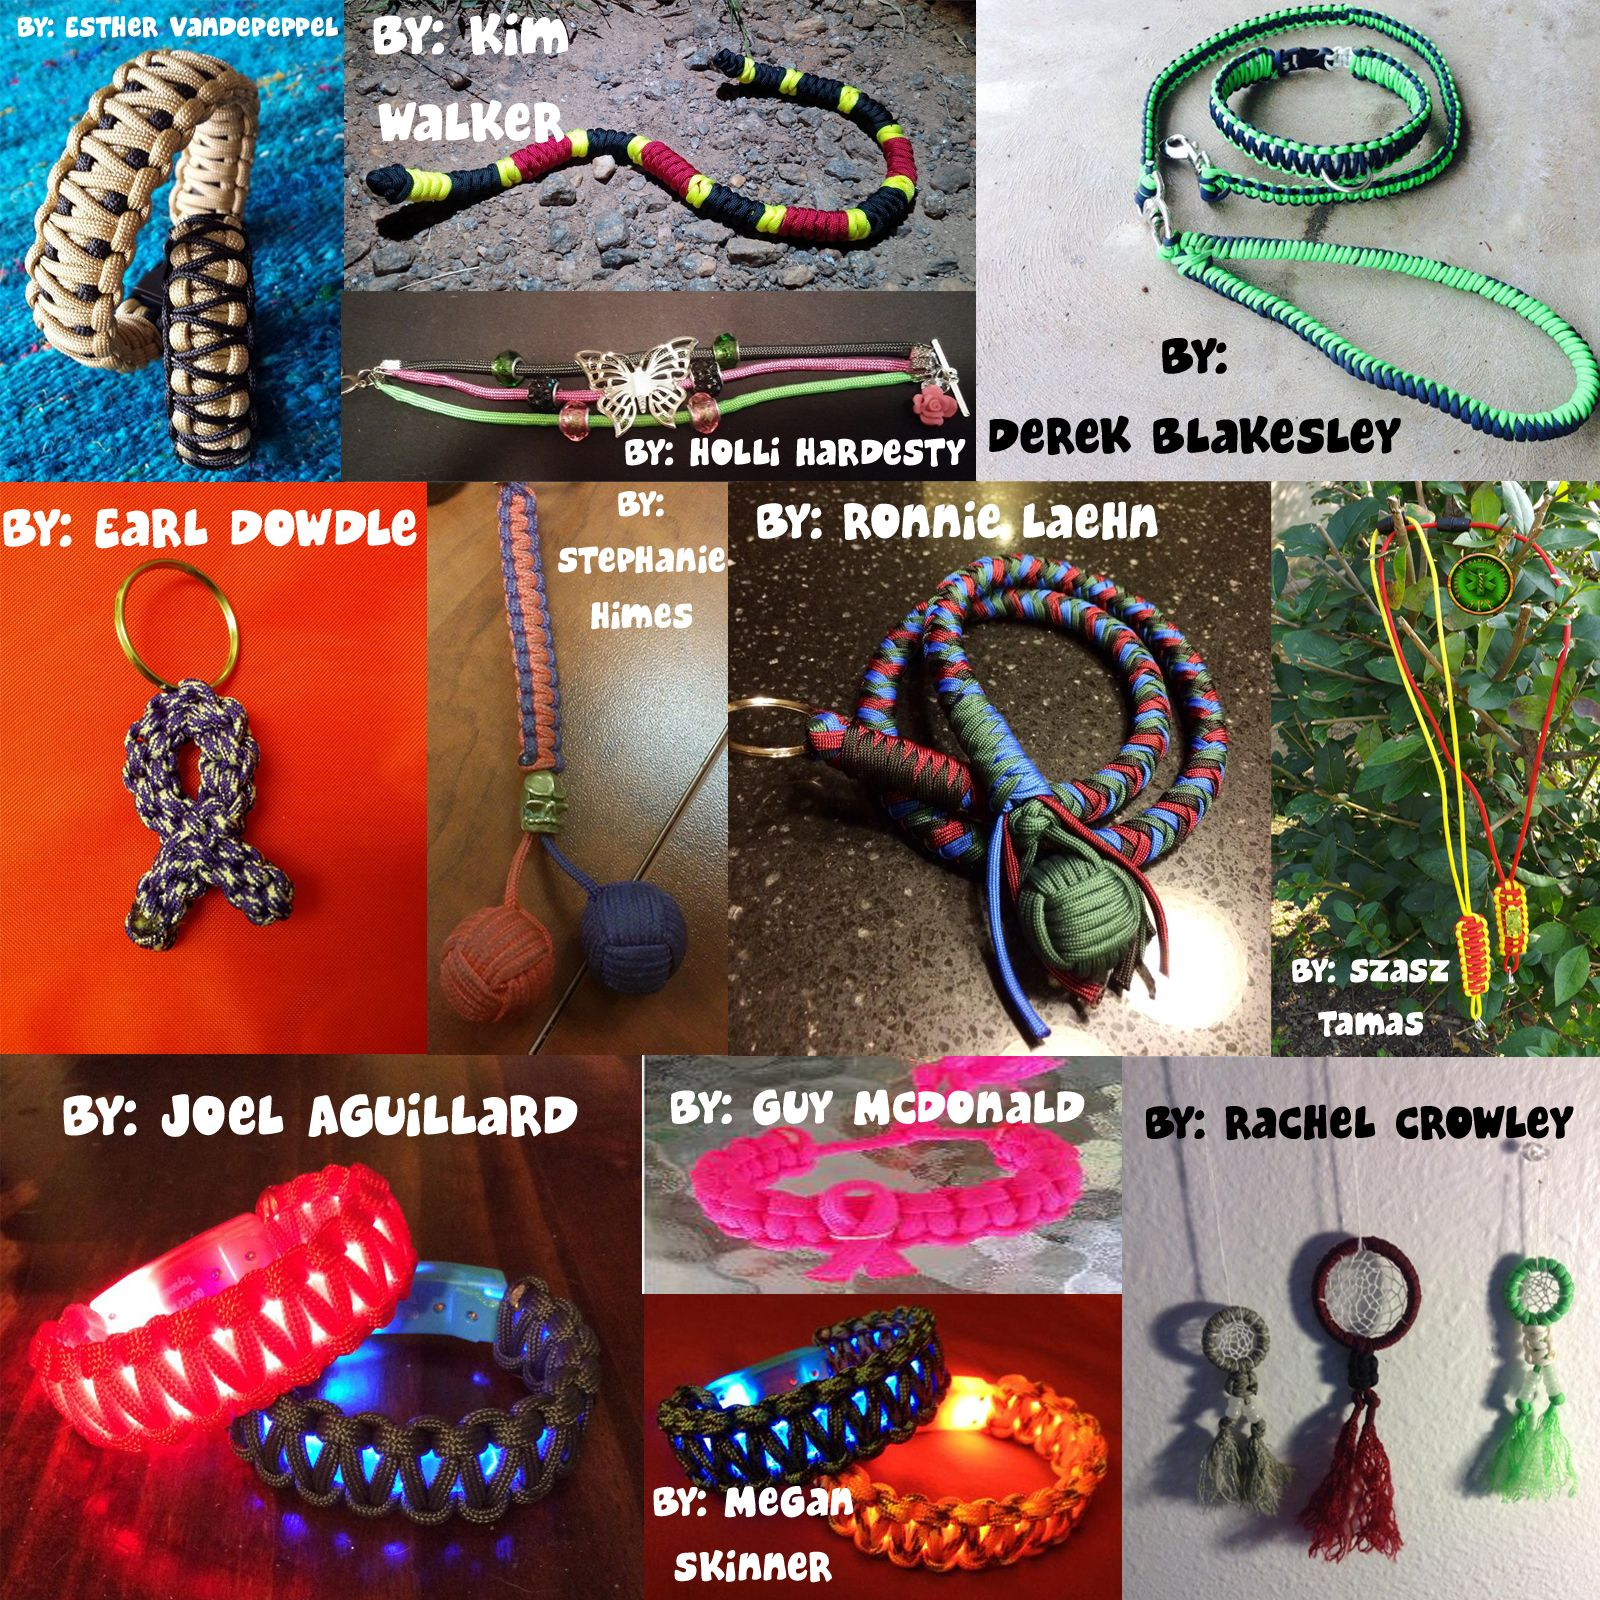 """BRAND NEW #MondayMedley!! *To be a part of a future """"Medley,"""" simply send us your pictures via FB message or wallpost! #HappyCording, all! #paracord #mondaymedley #prepper #survival #craft #diy #knotting #tying"""